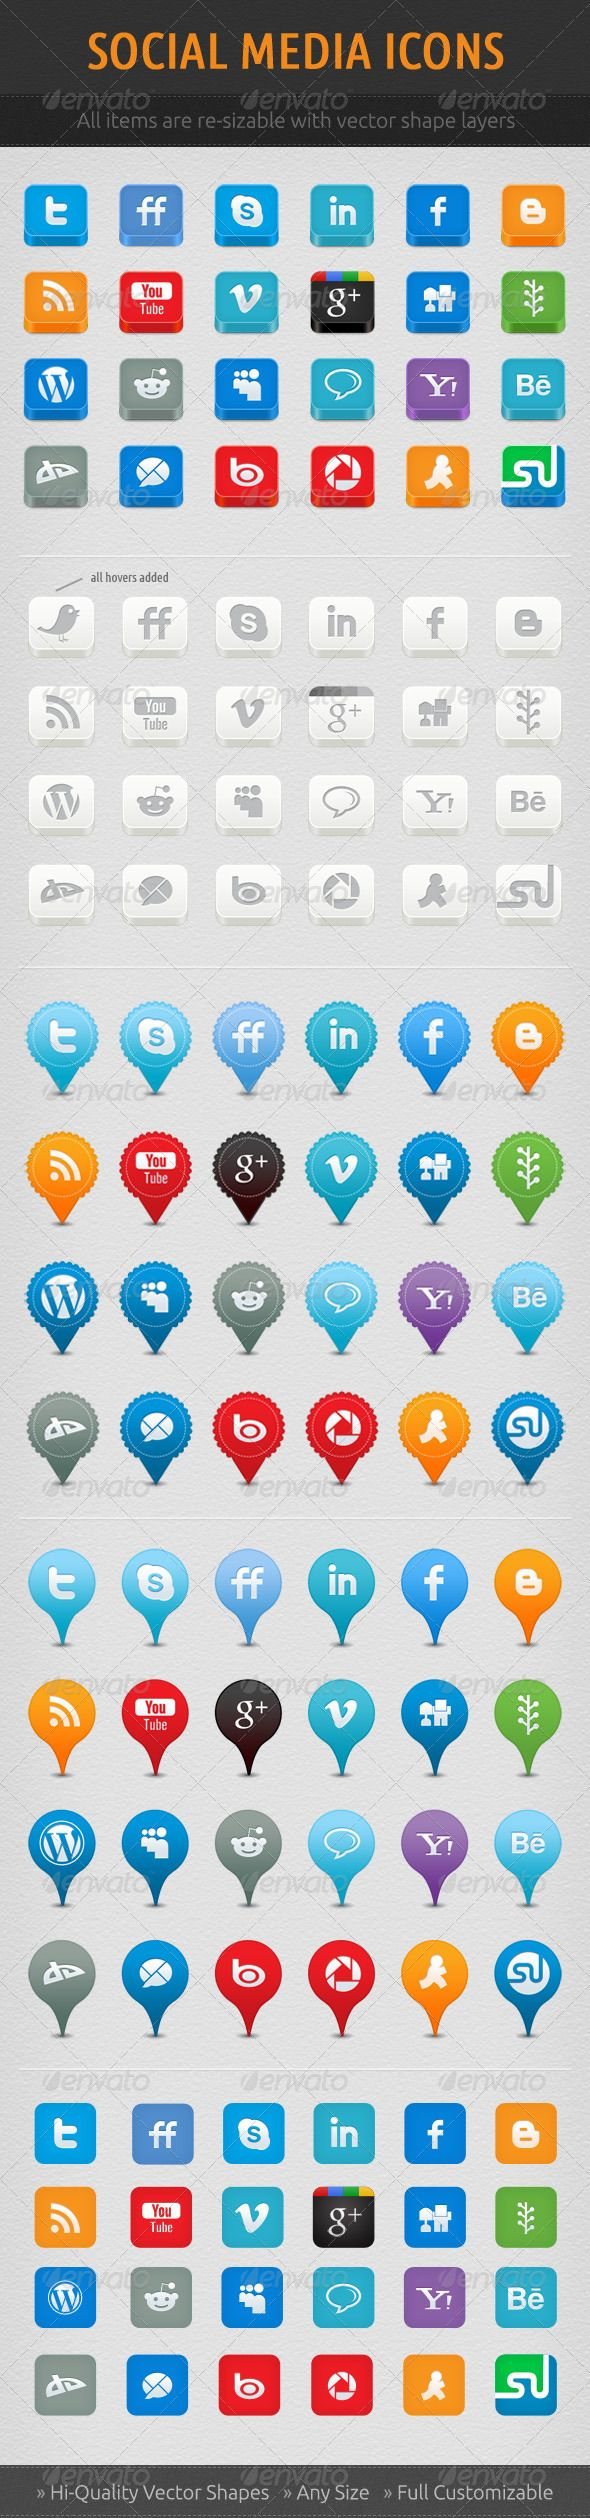 Social Network Icon Set — Photoshop PSD #wordpress #digg • Available here → https://graphicriver.net/item/social-network-icon-set/721419?ref=pxcr